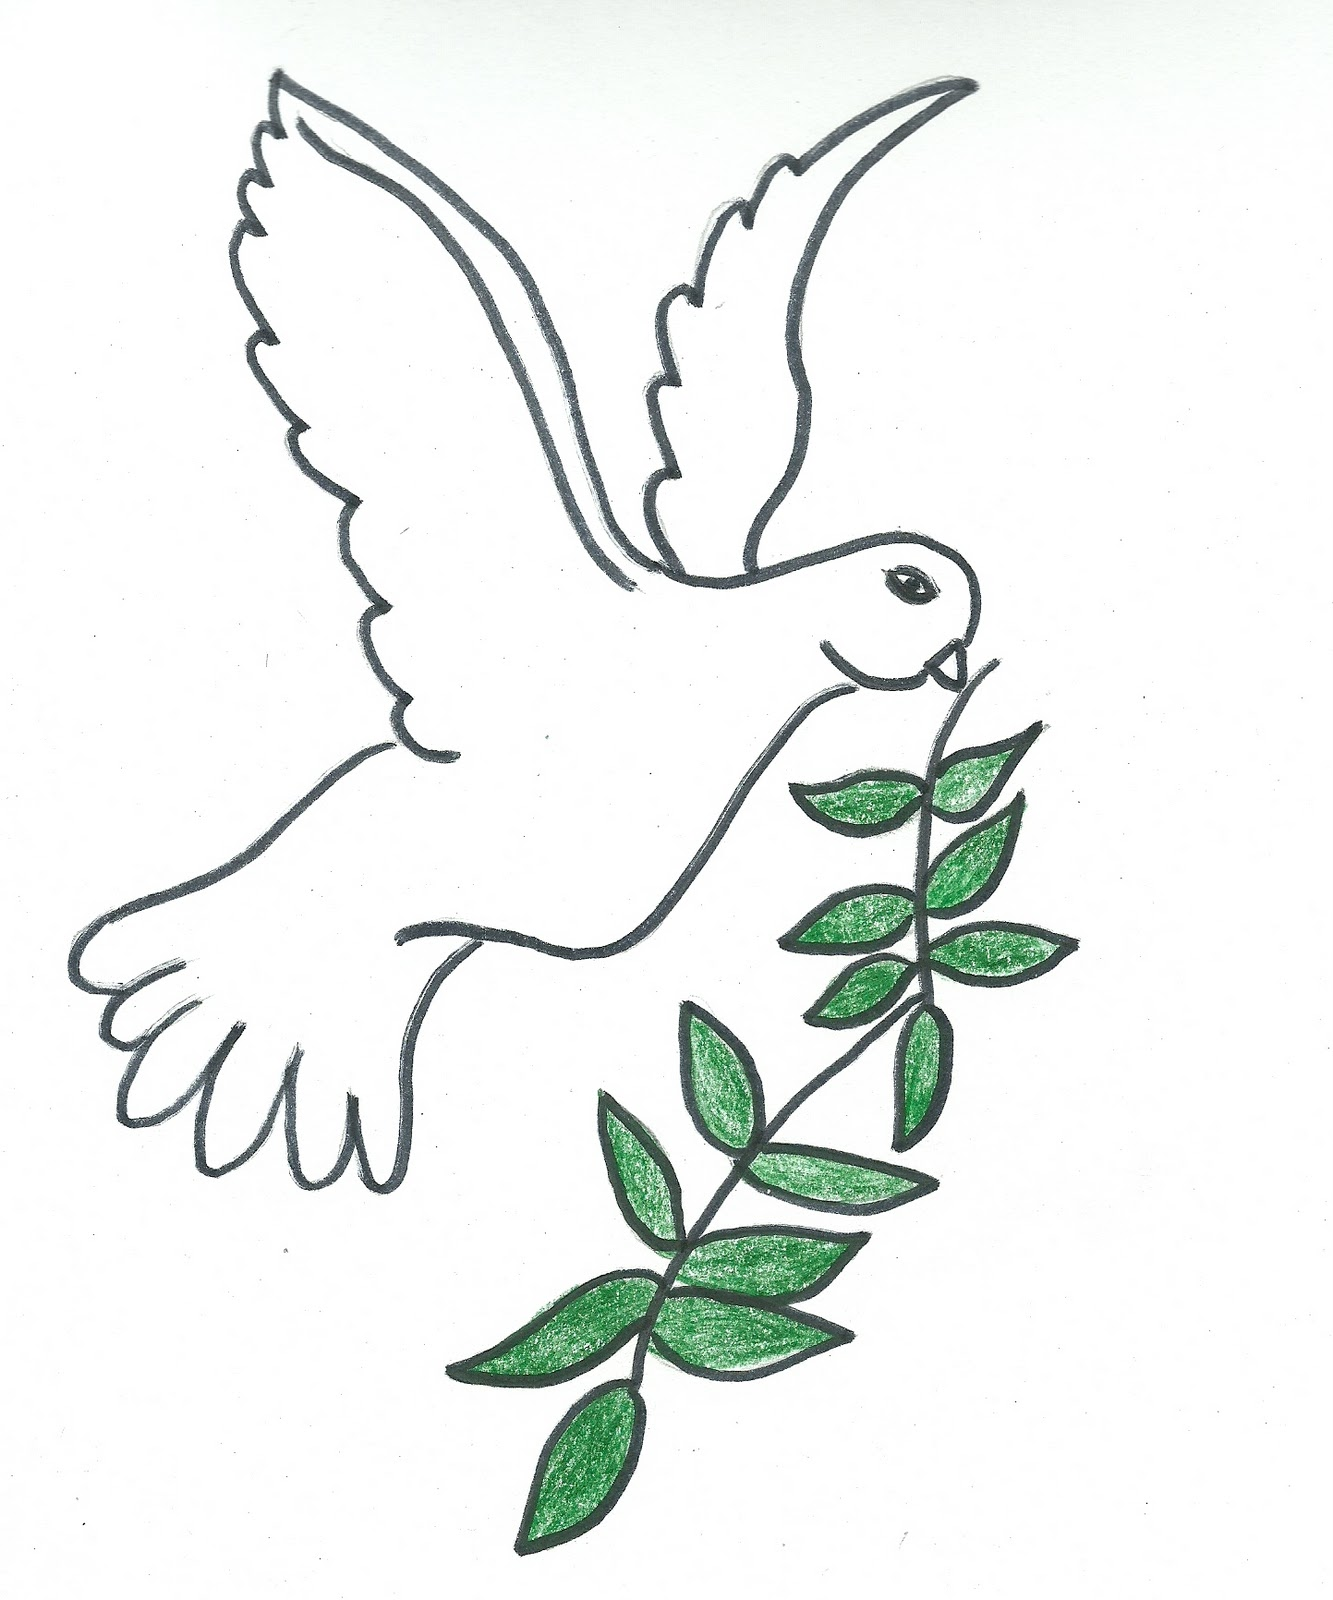 Catholic Dove Symbol Pictures to Pin on Pinterest - PinsDaddy